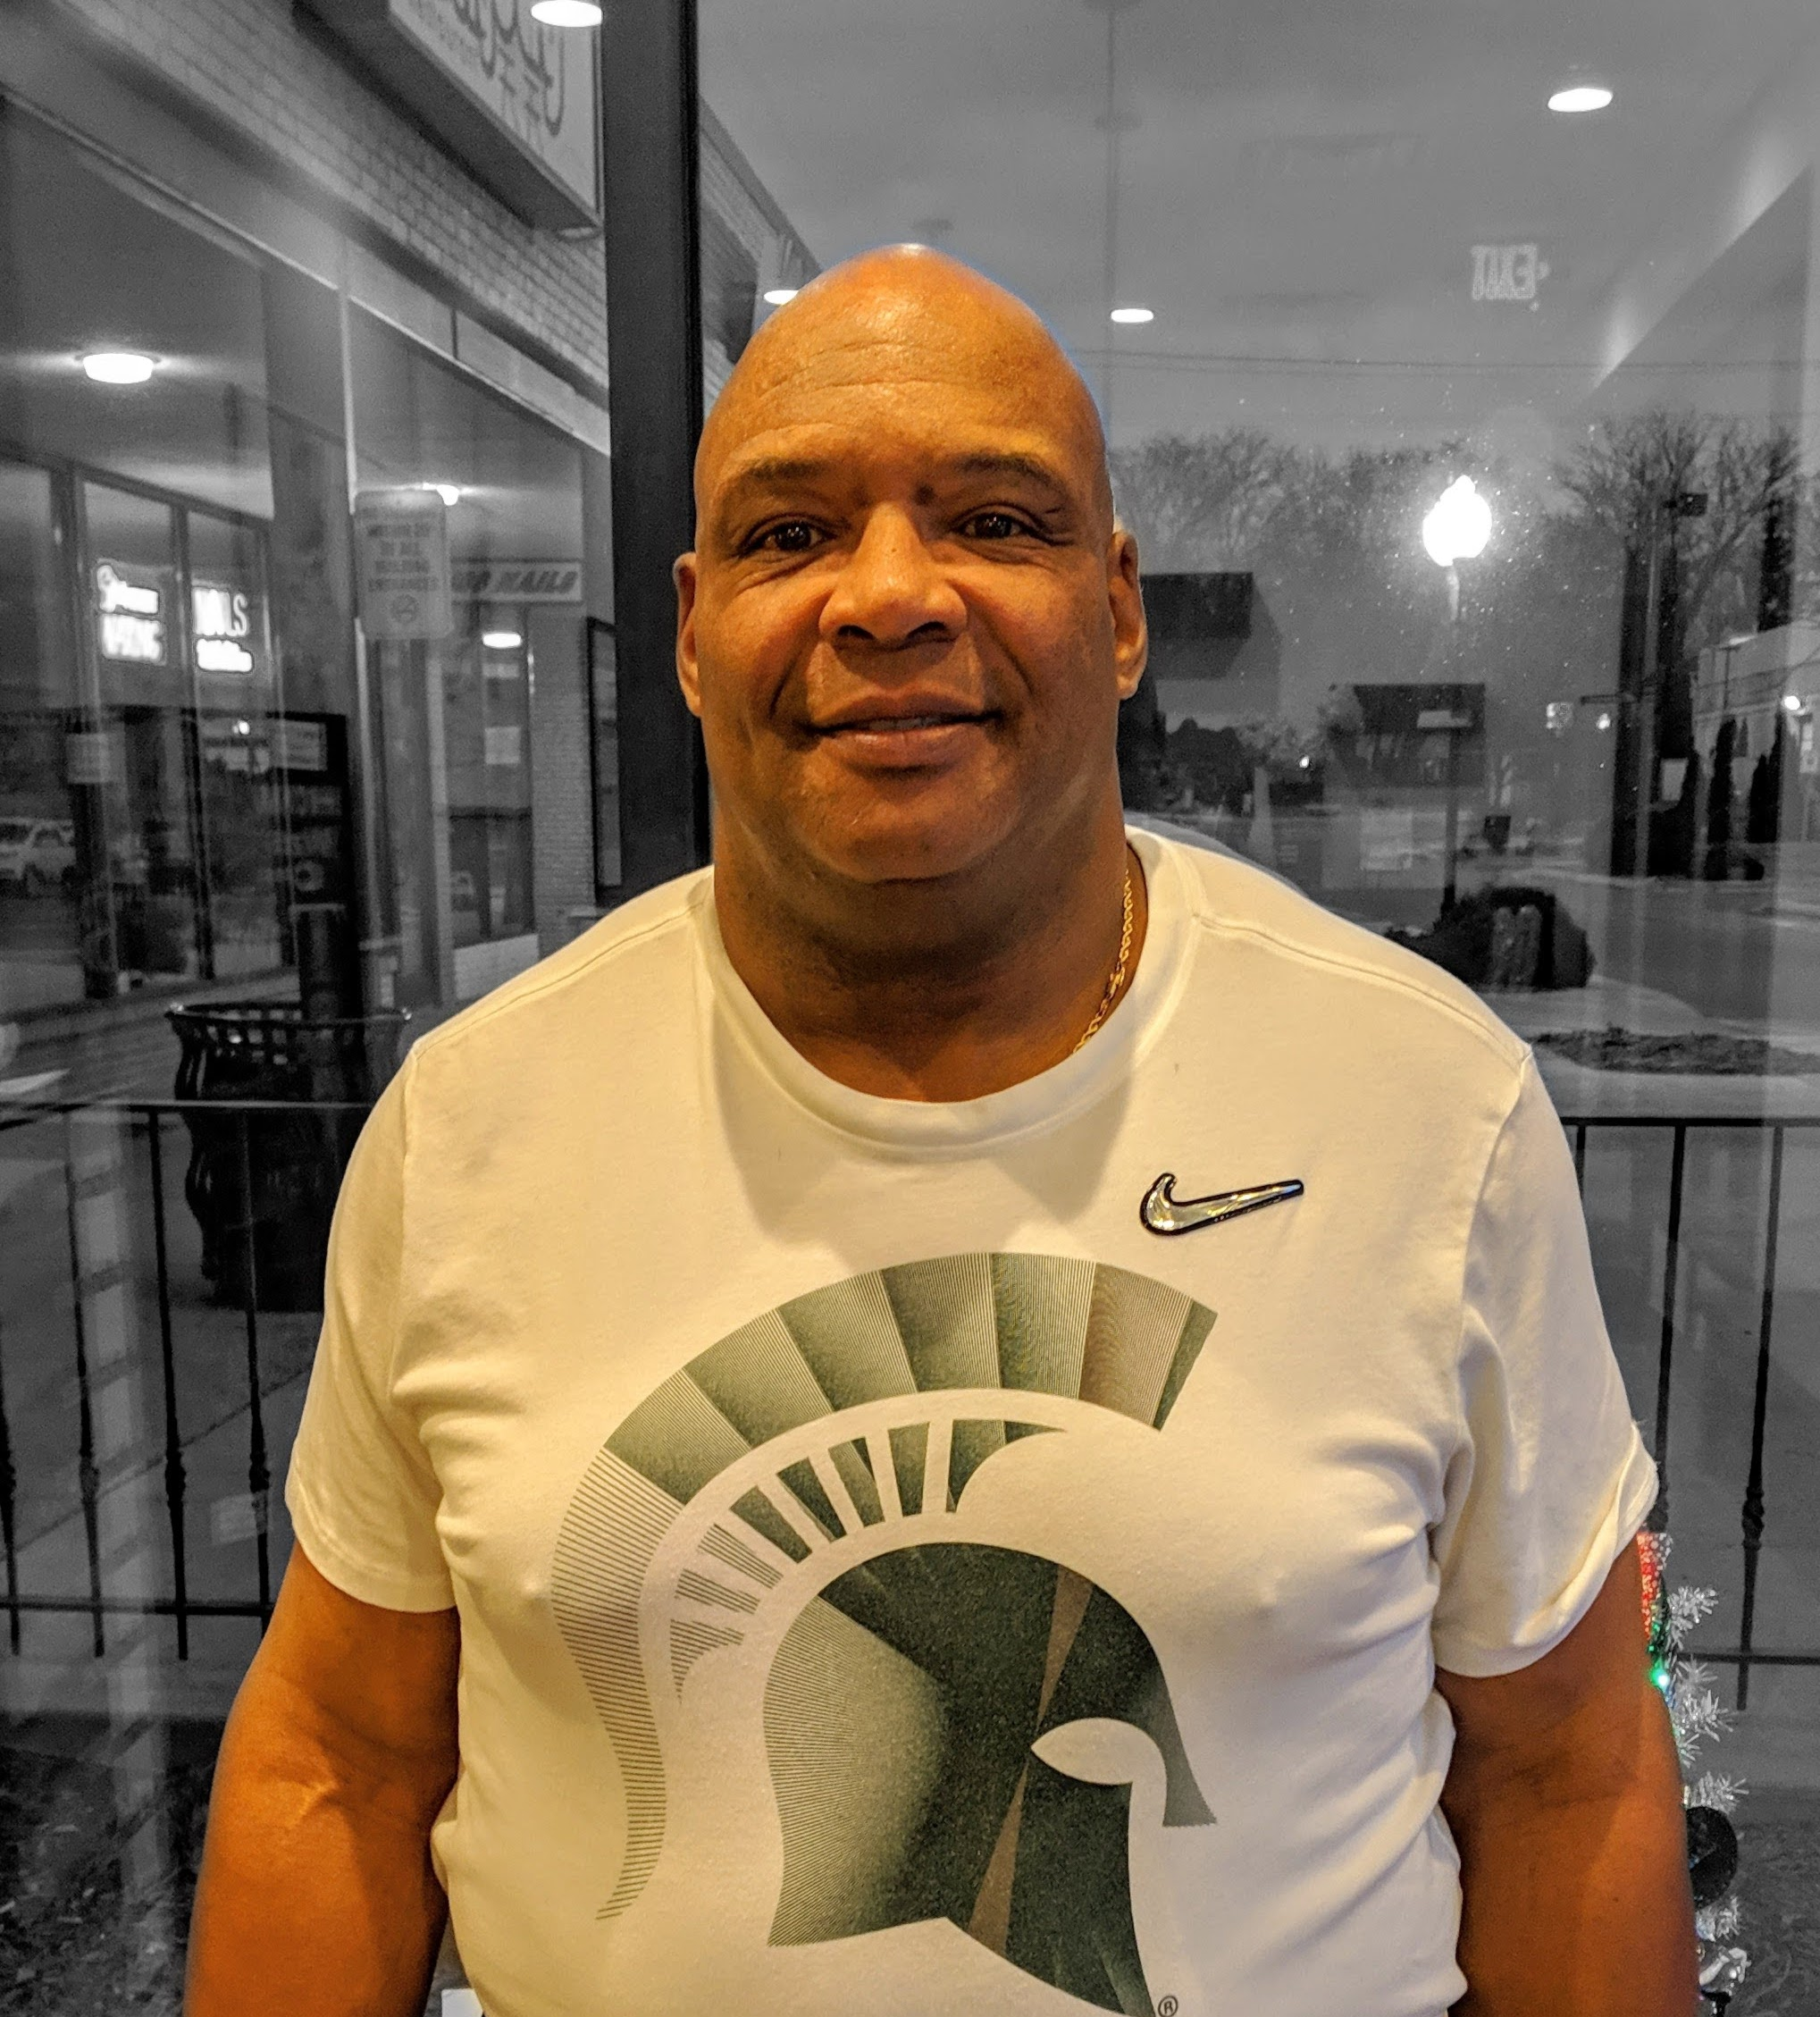 bikram yoga student spartans football coach ron burton Michigan state university